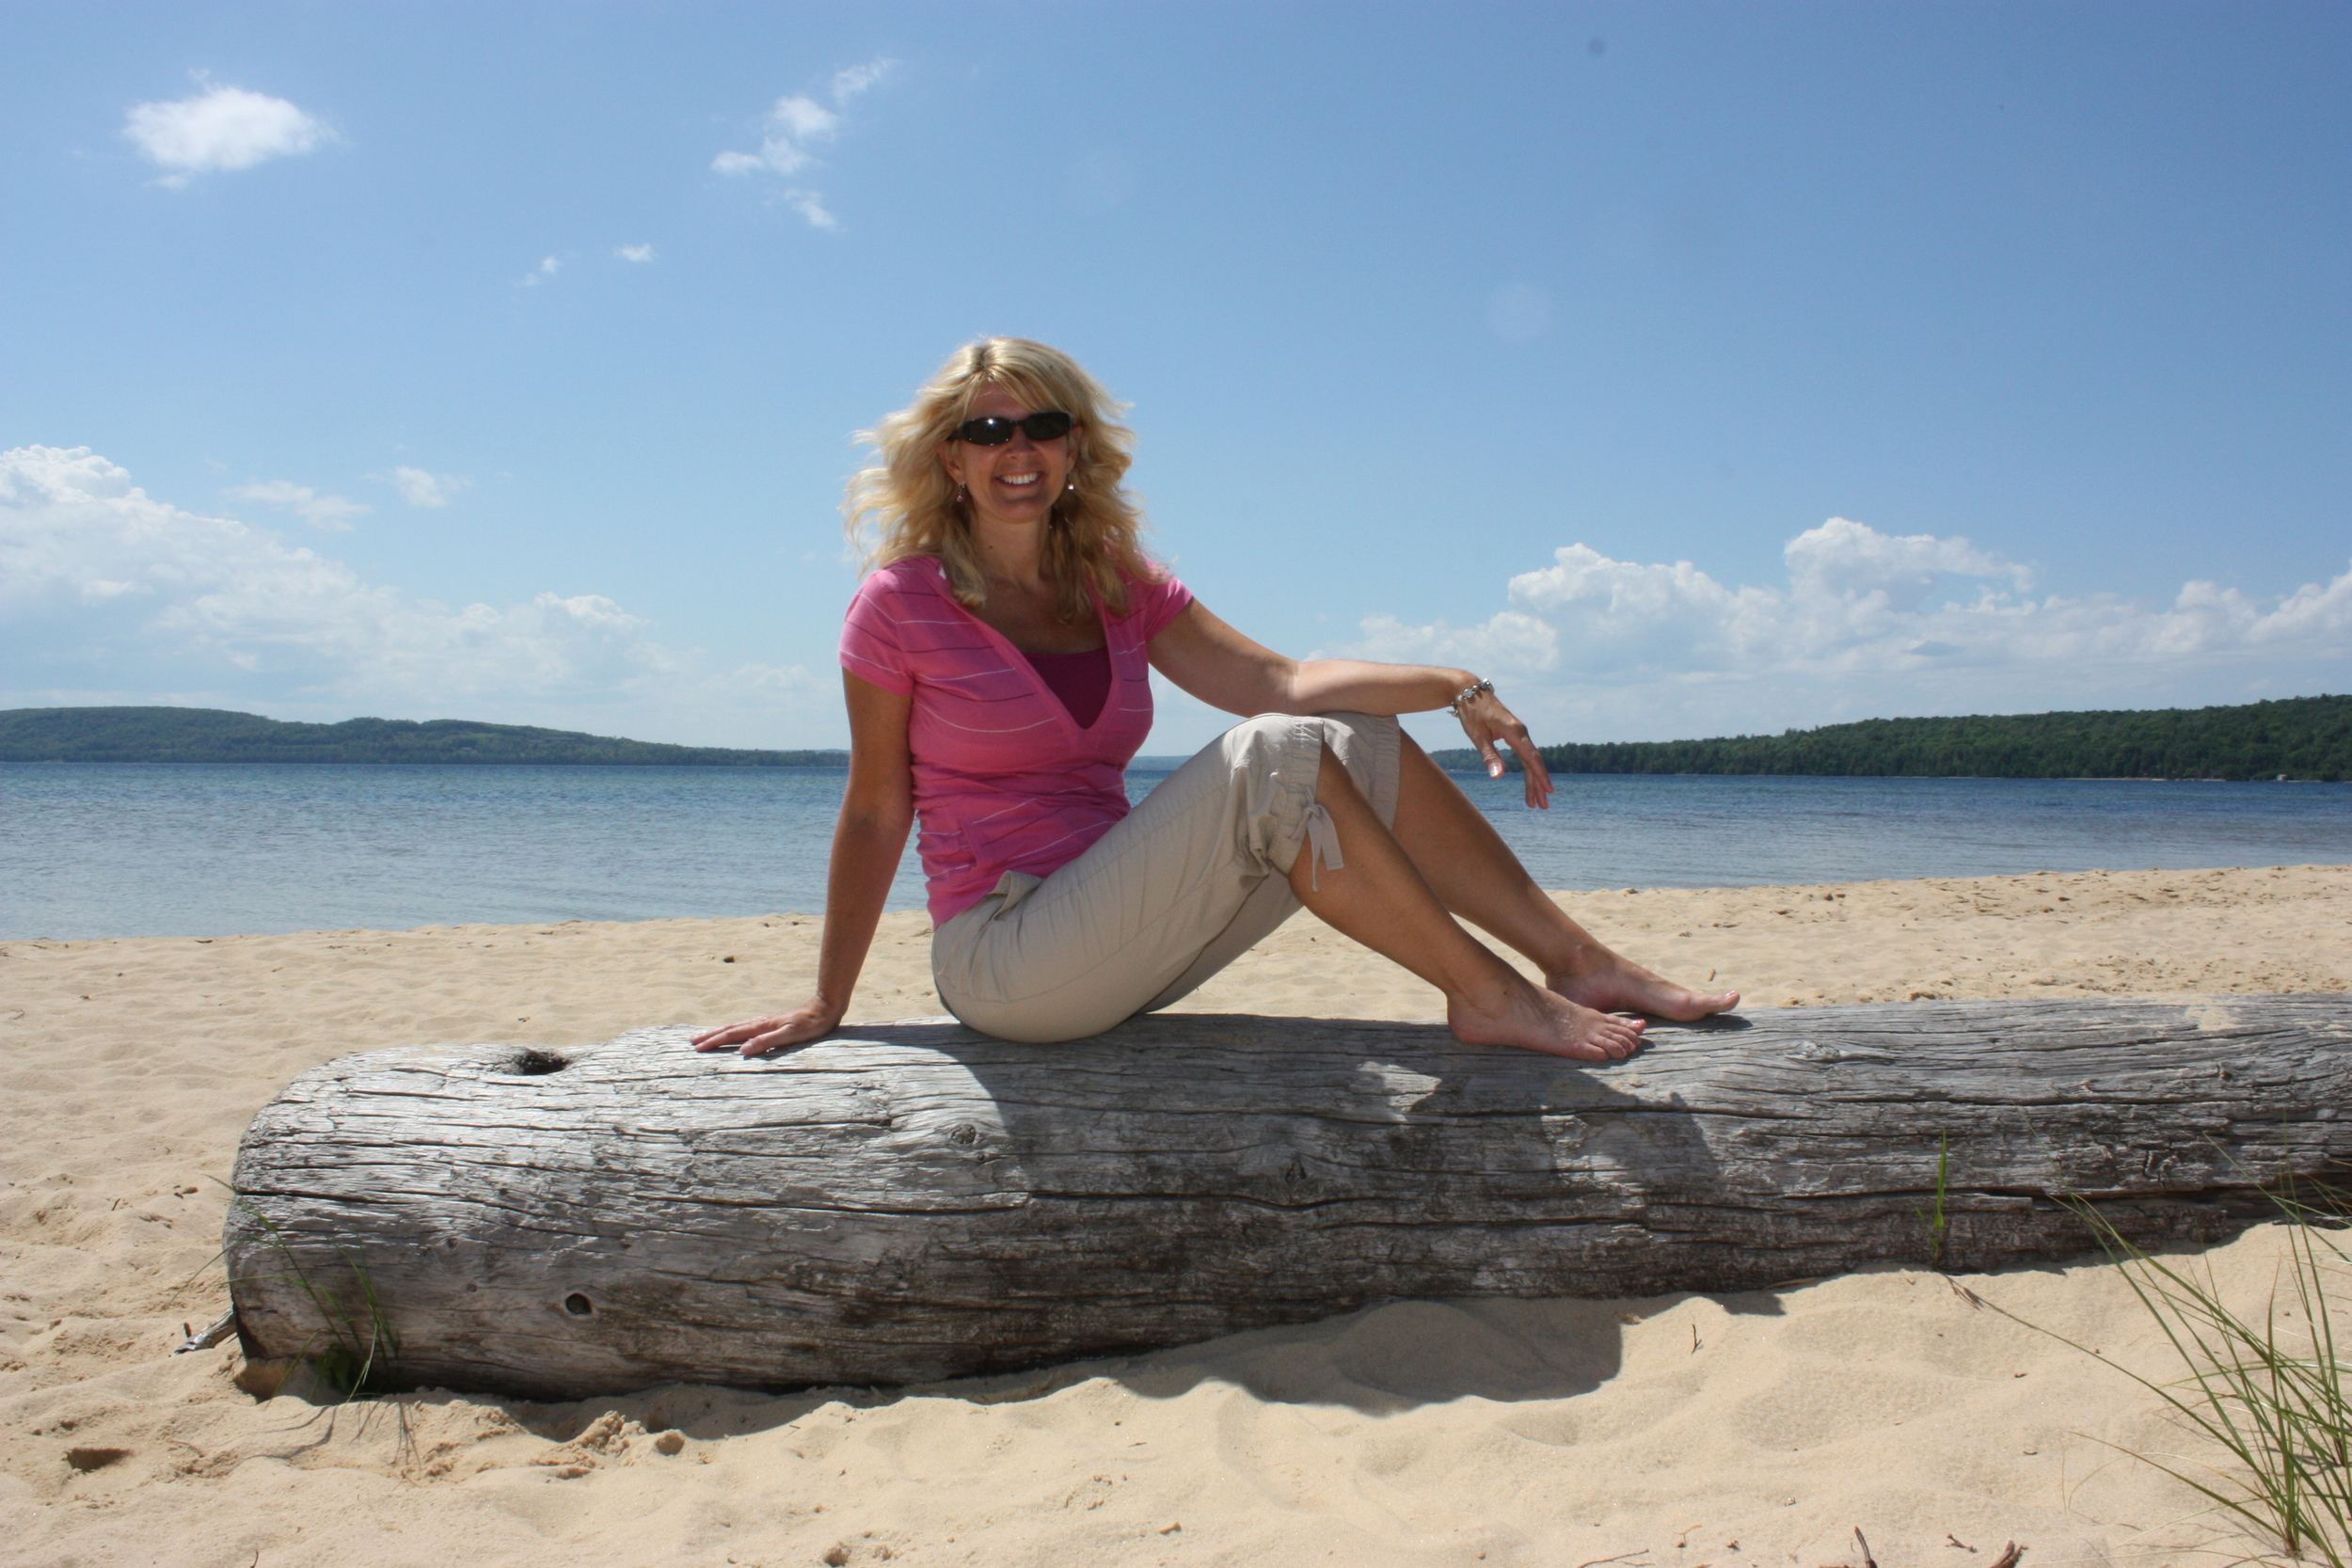 At Sand Point in the Pictured Rocks park on Lake Superior